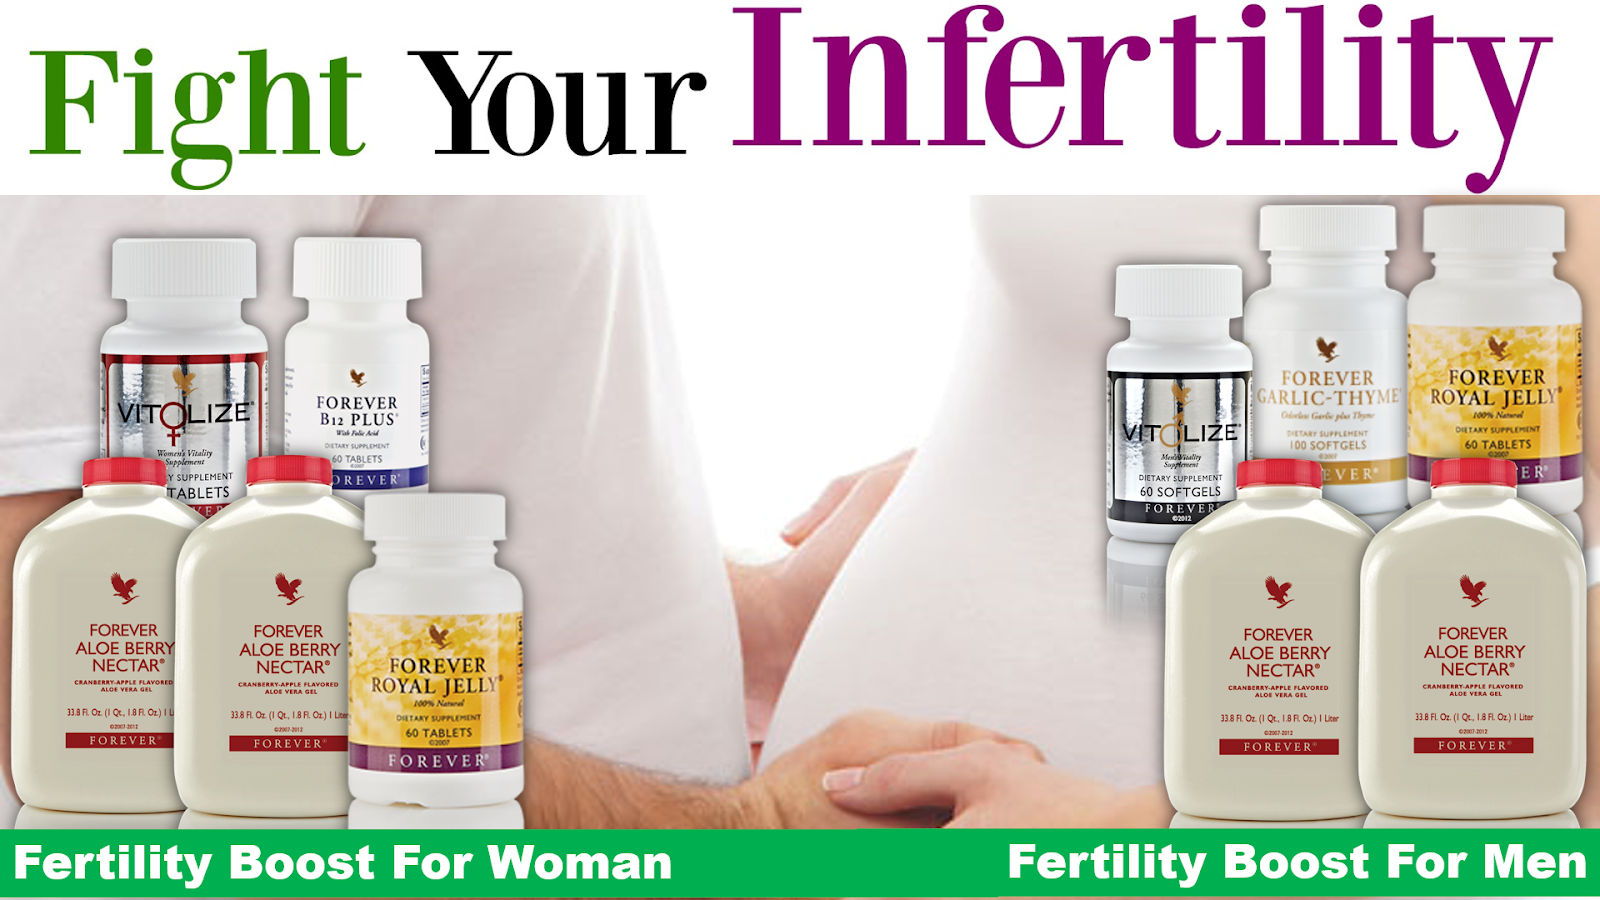 Here is a Fix for all your fertility Needs.